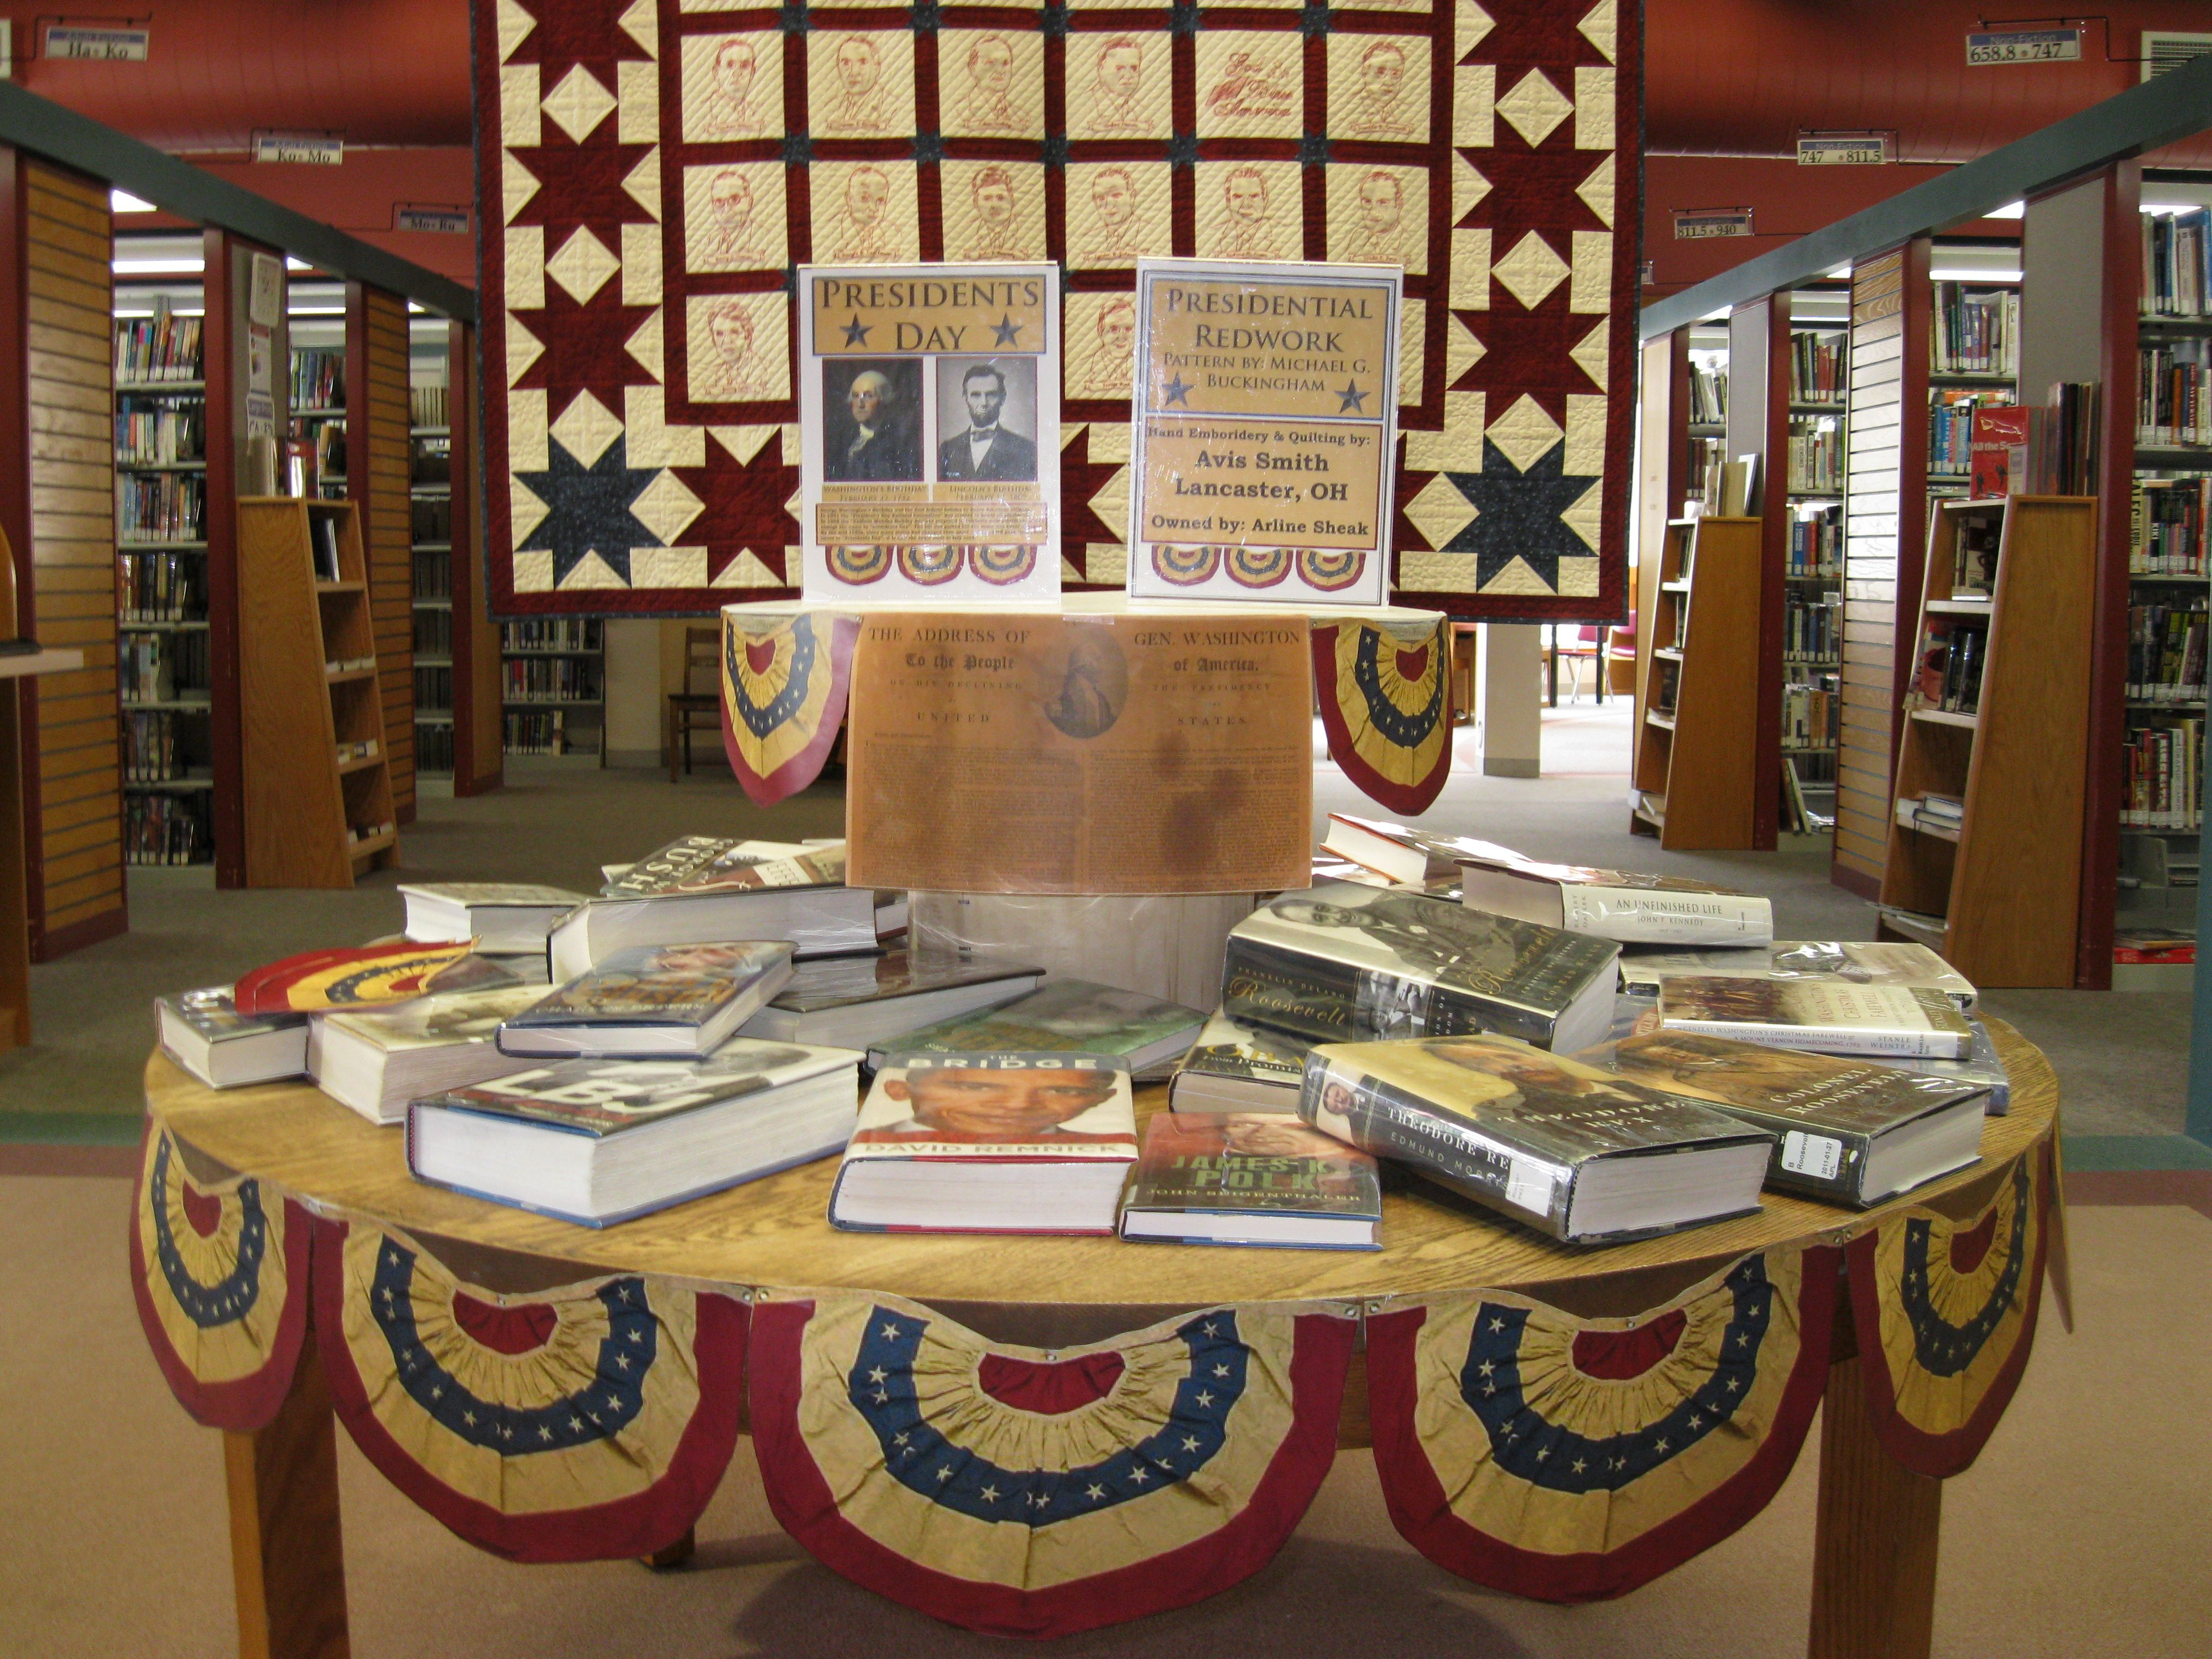 Presidents Day display and quilt